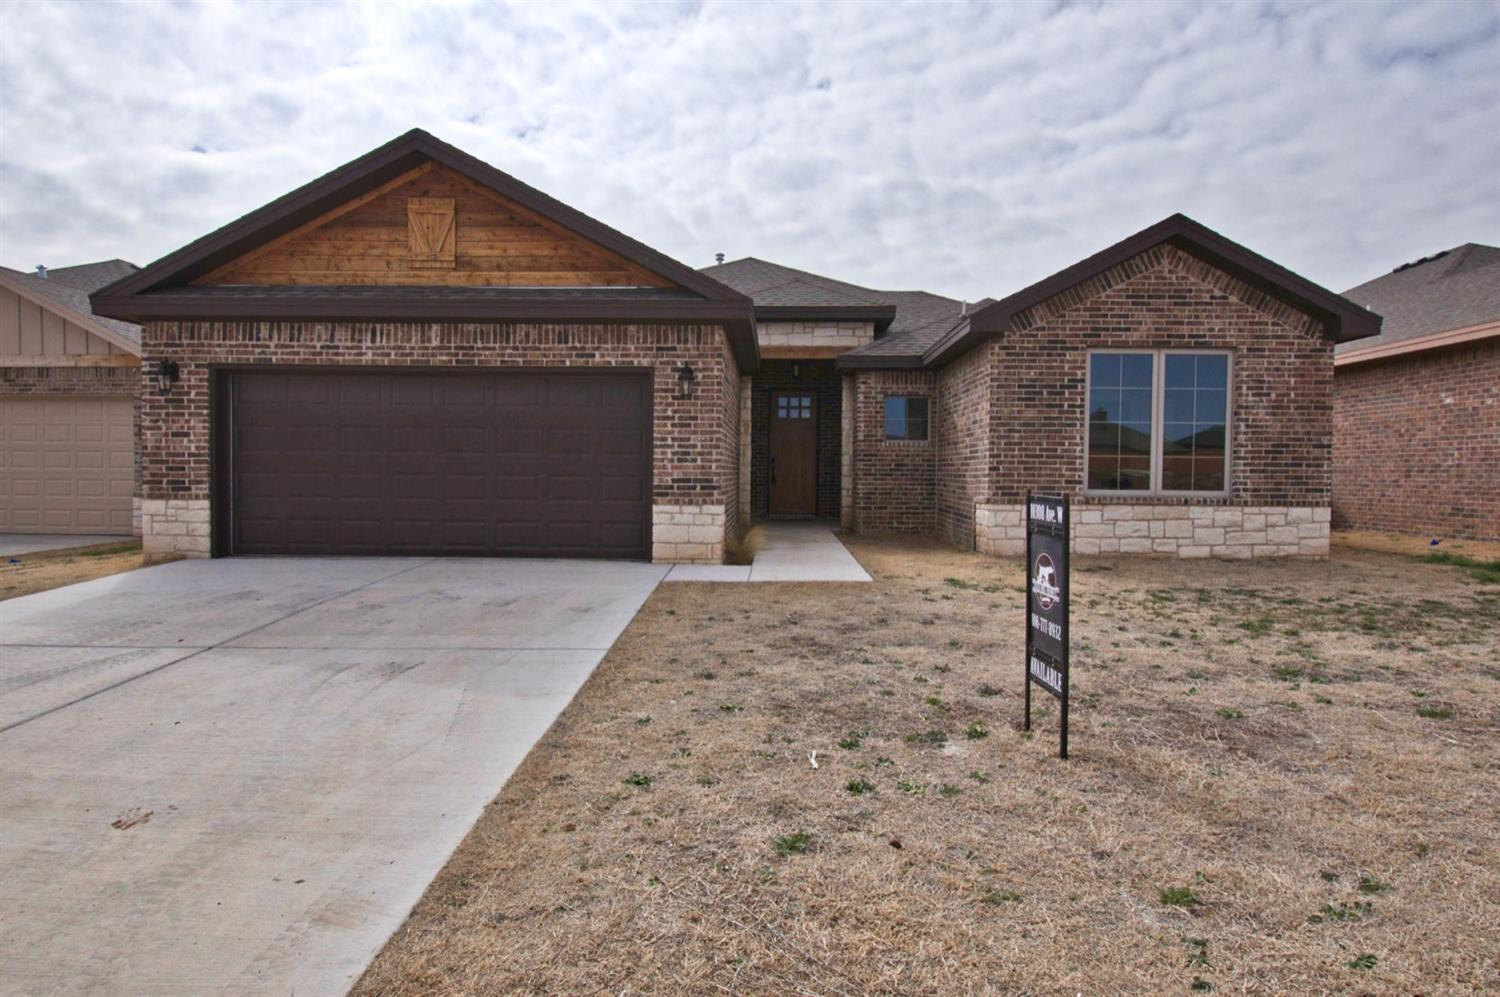 A Beautiful New Build by Bird Dog Homes! This 3/2/2 has every detail. This rustic style home has a warm neutral palette complete with a built in wine bar, custom cabinets, open beam ceiling and complete tile surrounds in the bathrooms. Great closet sizes with master closet connecting to the laundry room. Don't pass this new build up! A definite must see!